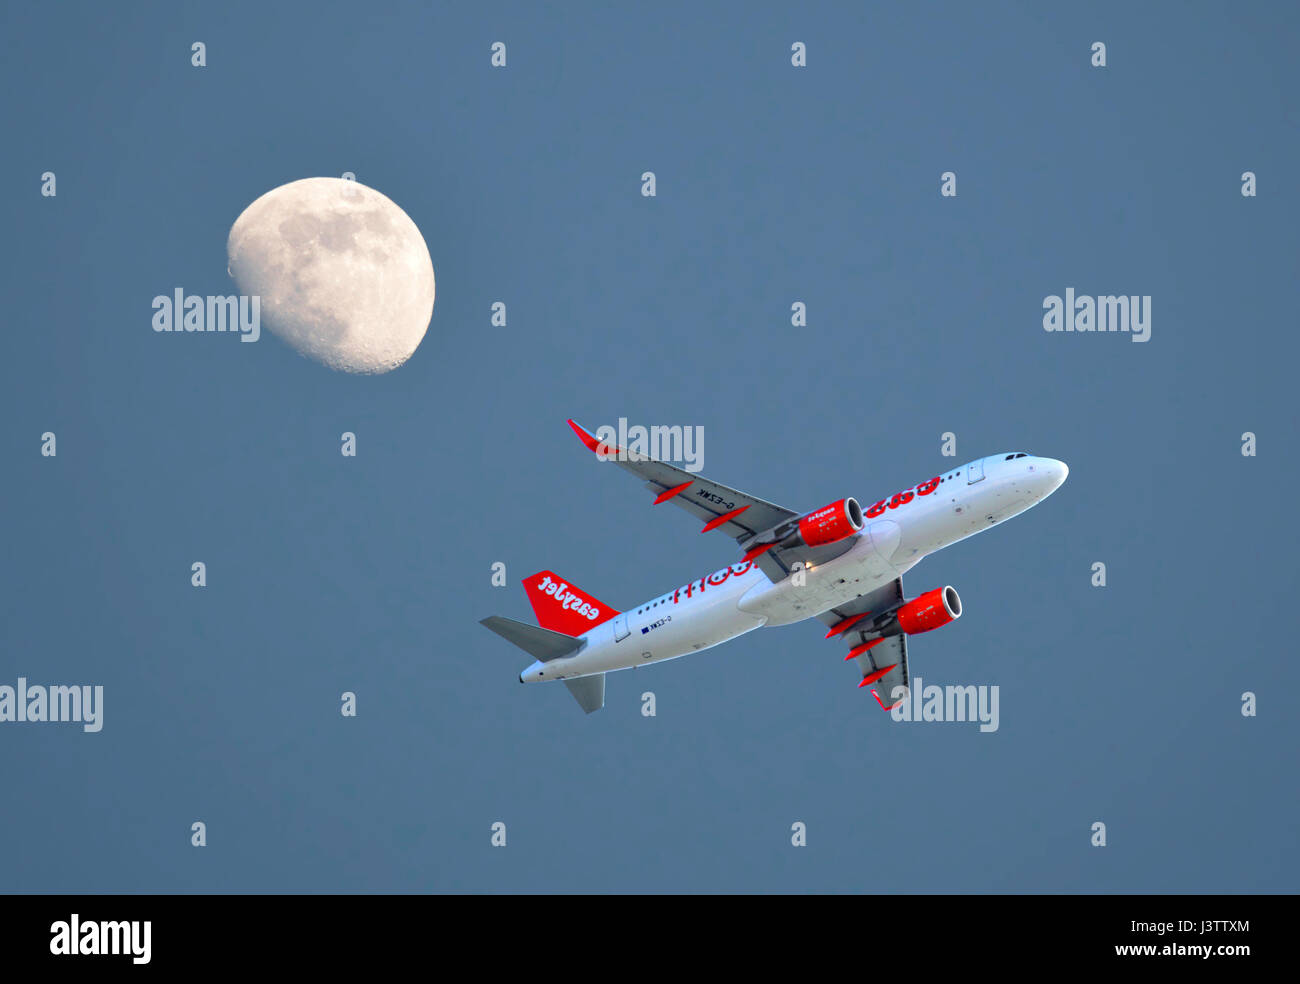 Easyjet Airbus A320 aircraft taking off from Faro Airport with a three quarter moon in the evening sky - Stock Image